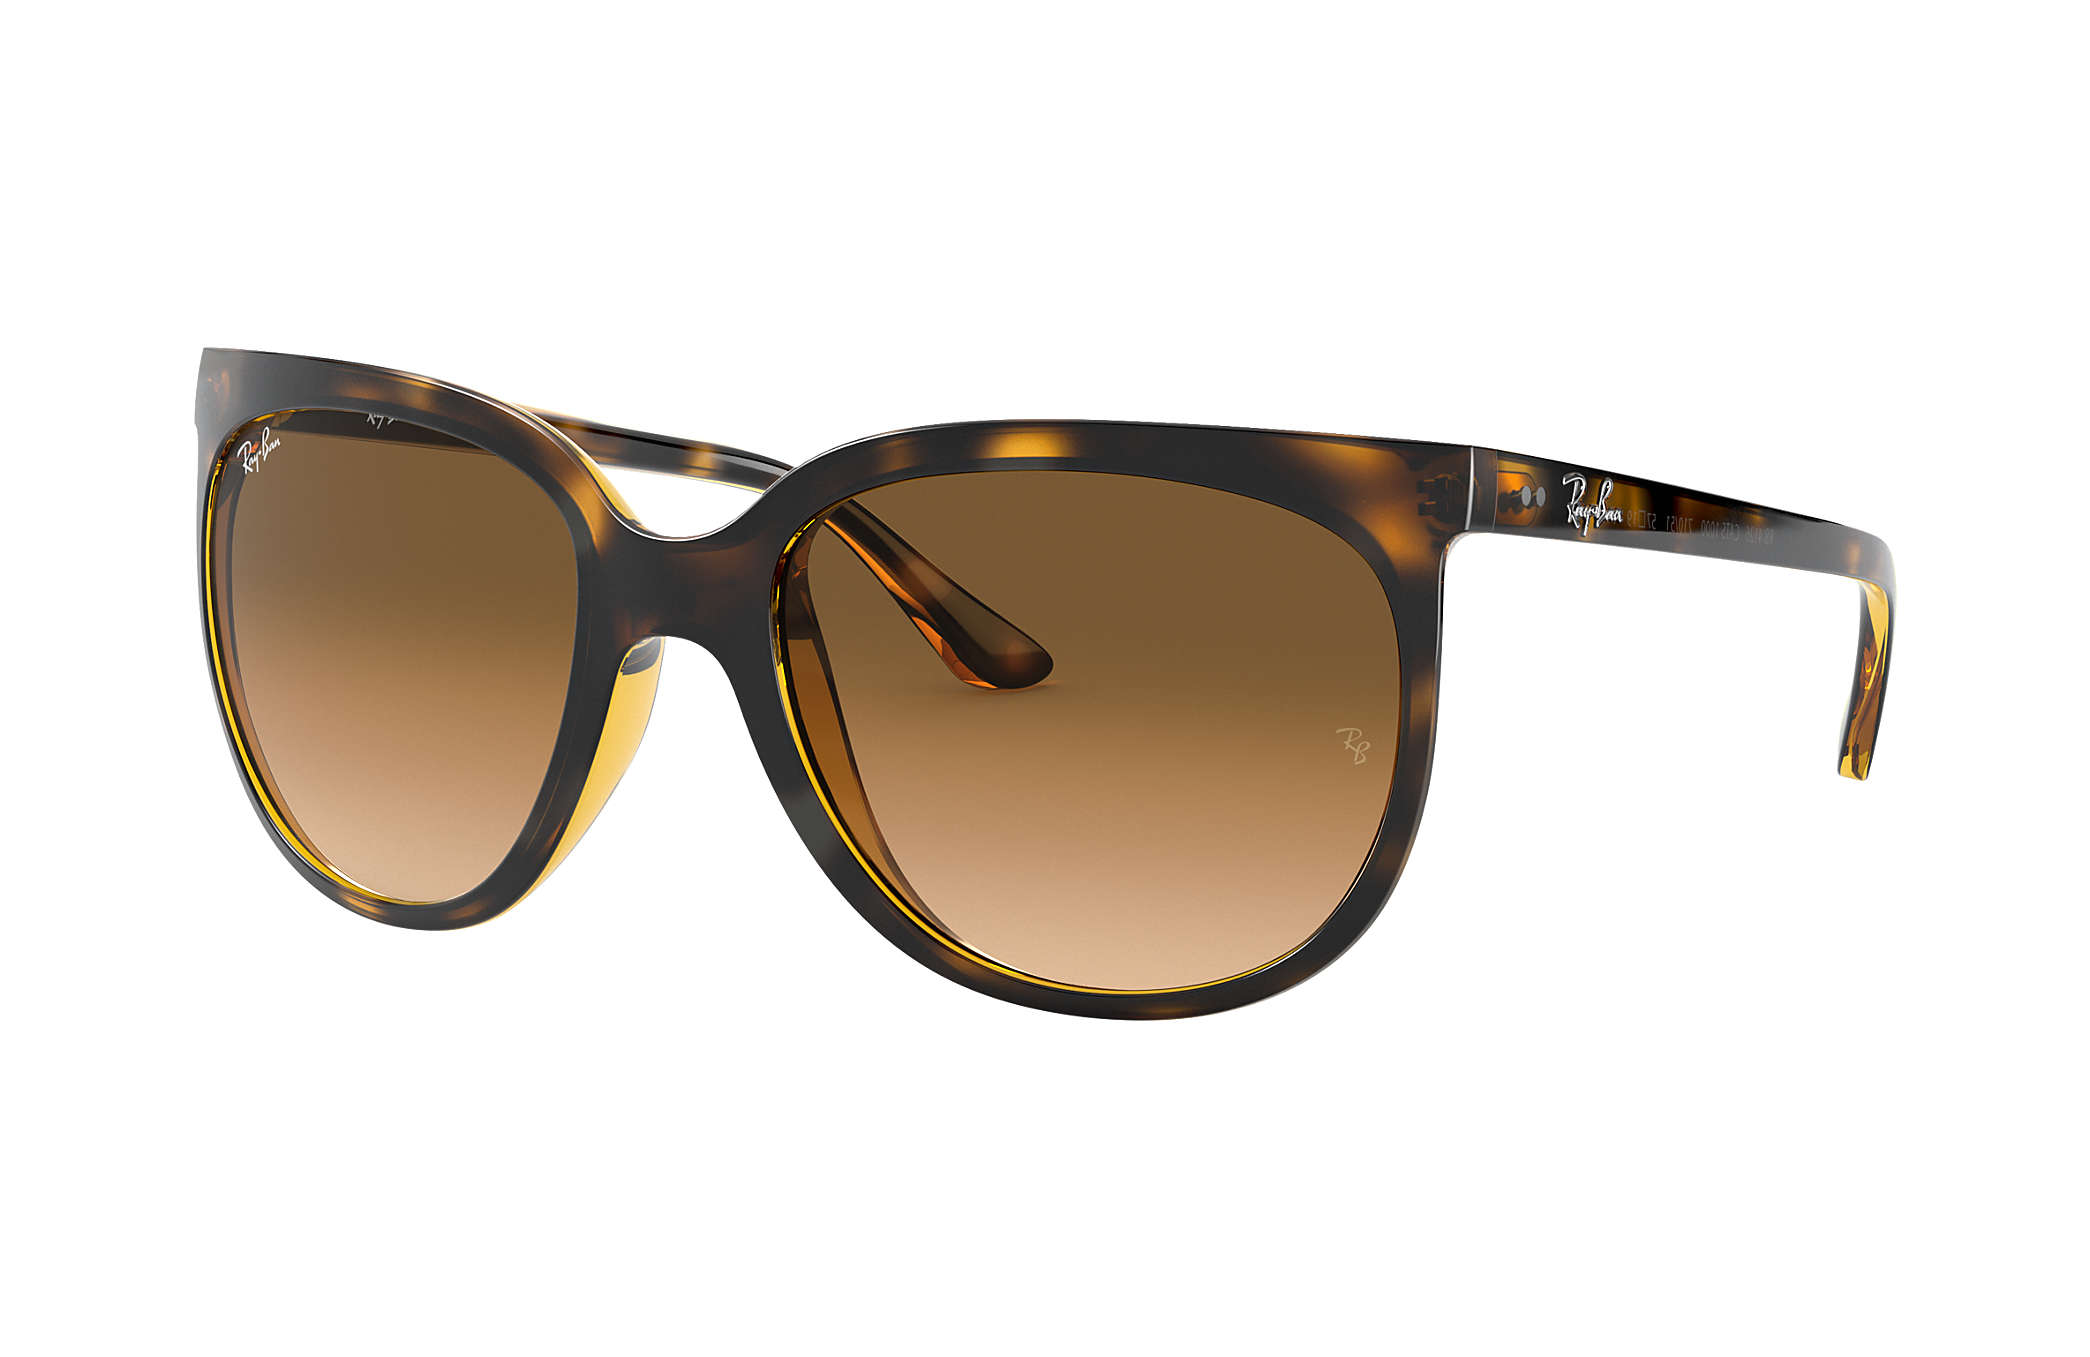 9f55addcc5b Ray-Ban Cats 1000 RB4126 Tortoise - Nylon - Light Brown Lenses ...